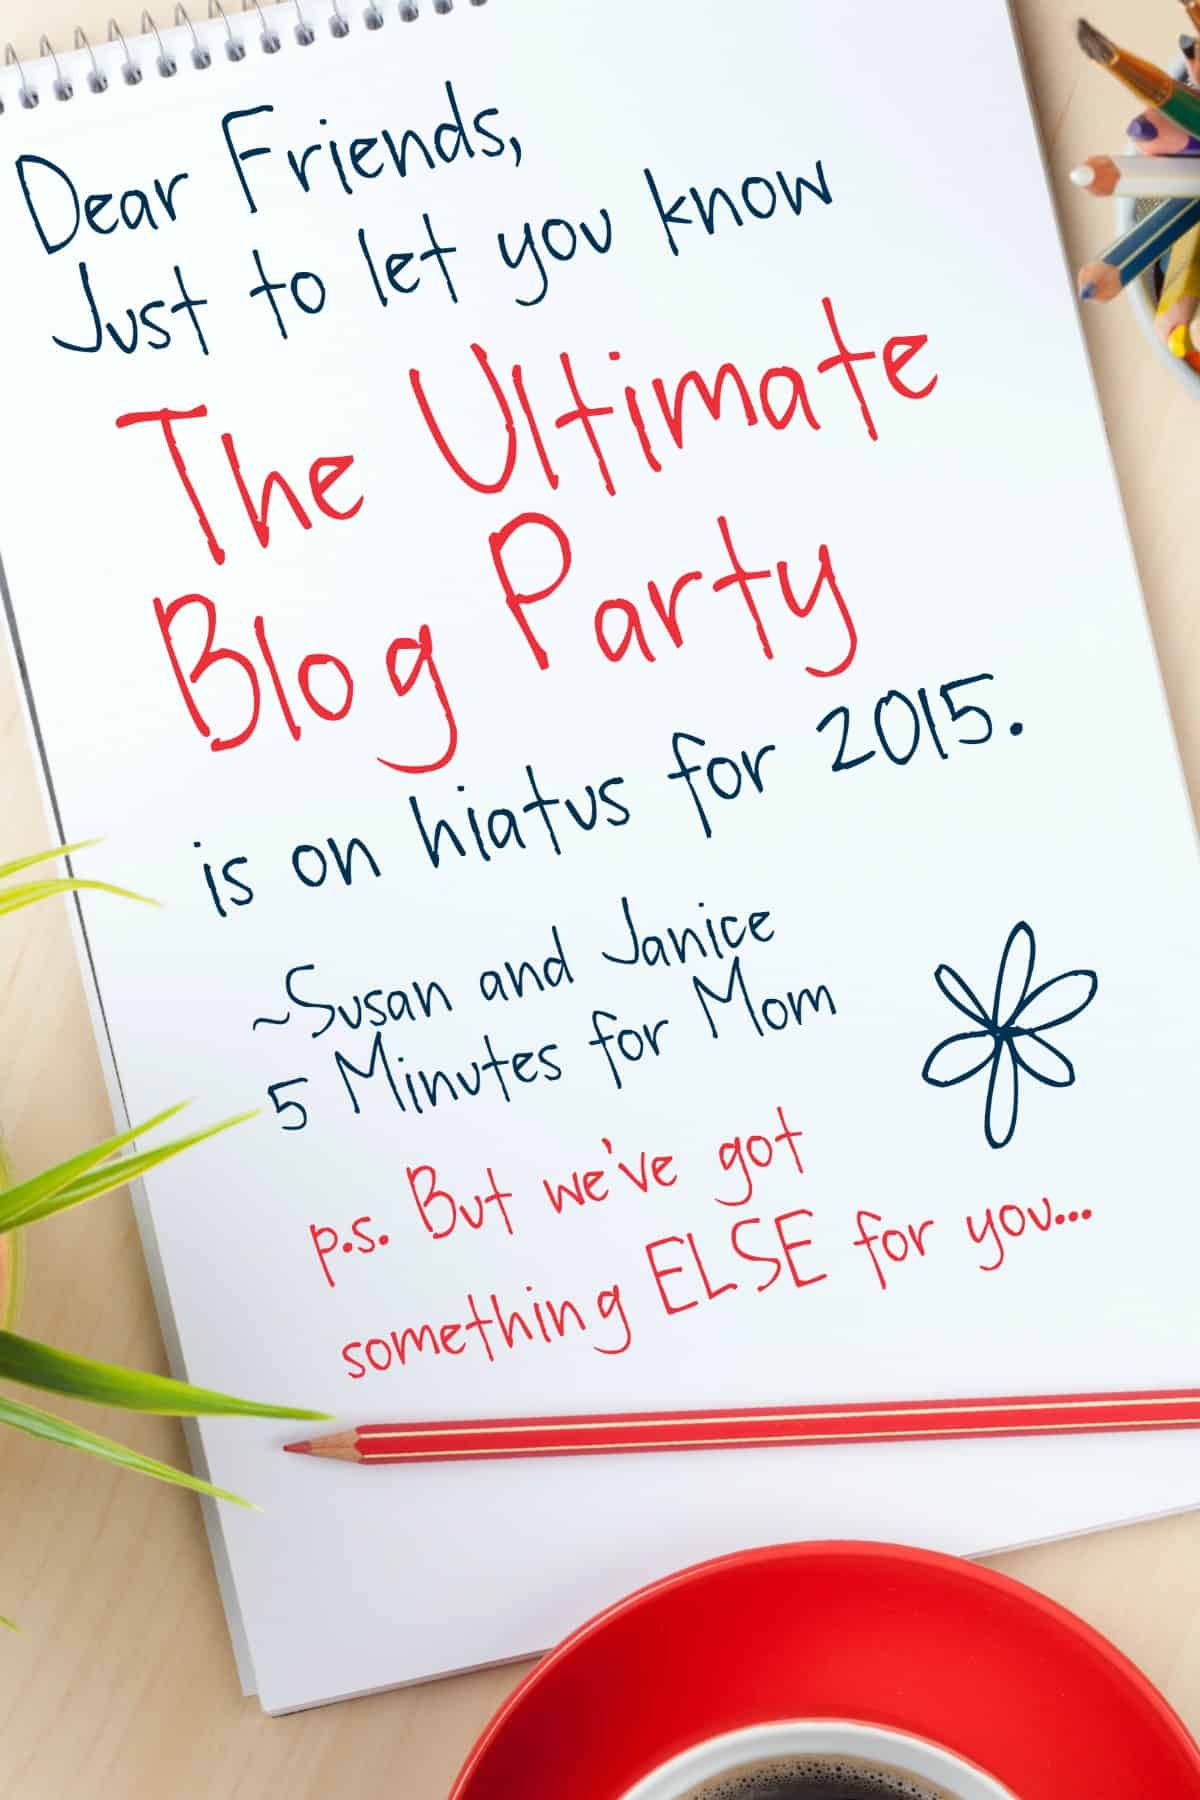 The Ultimate Blog Party is on Hiatus 2015